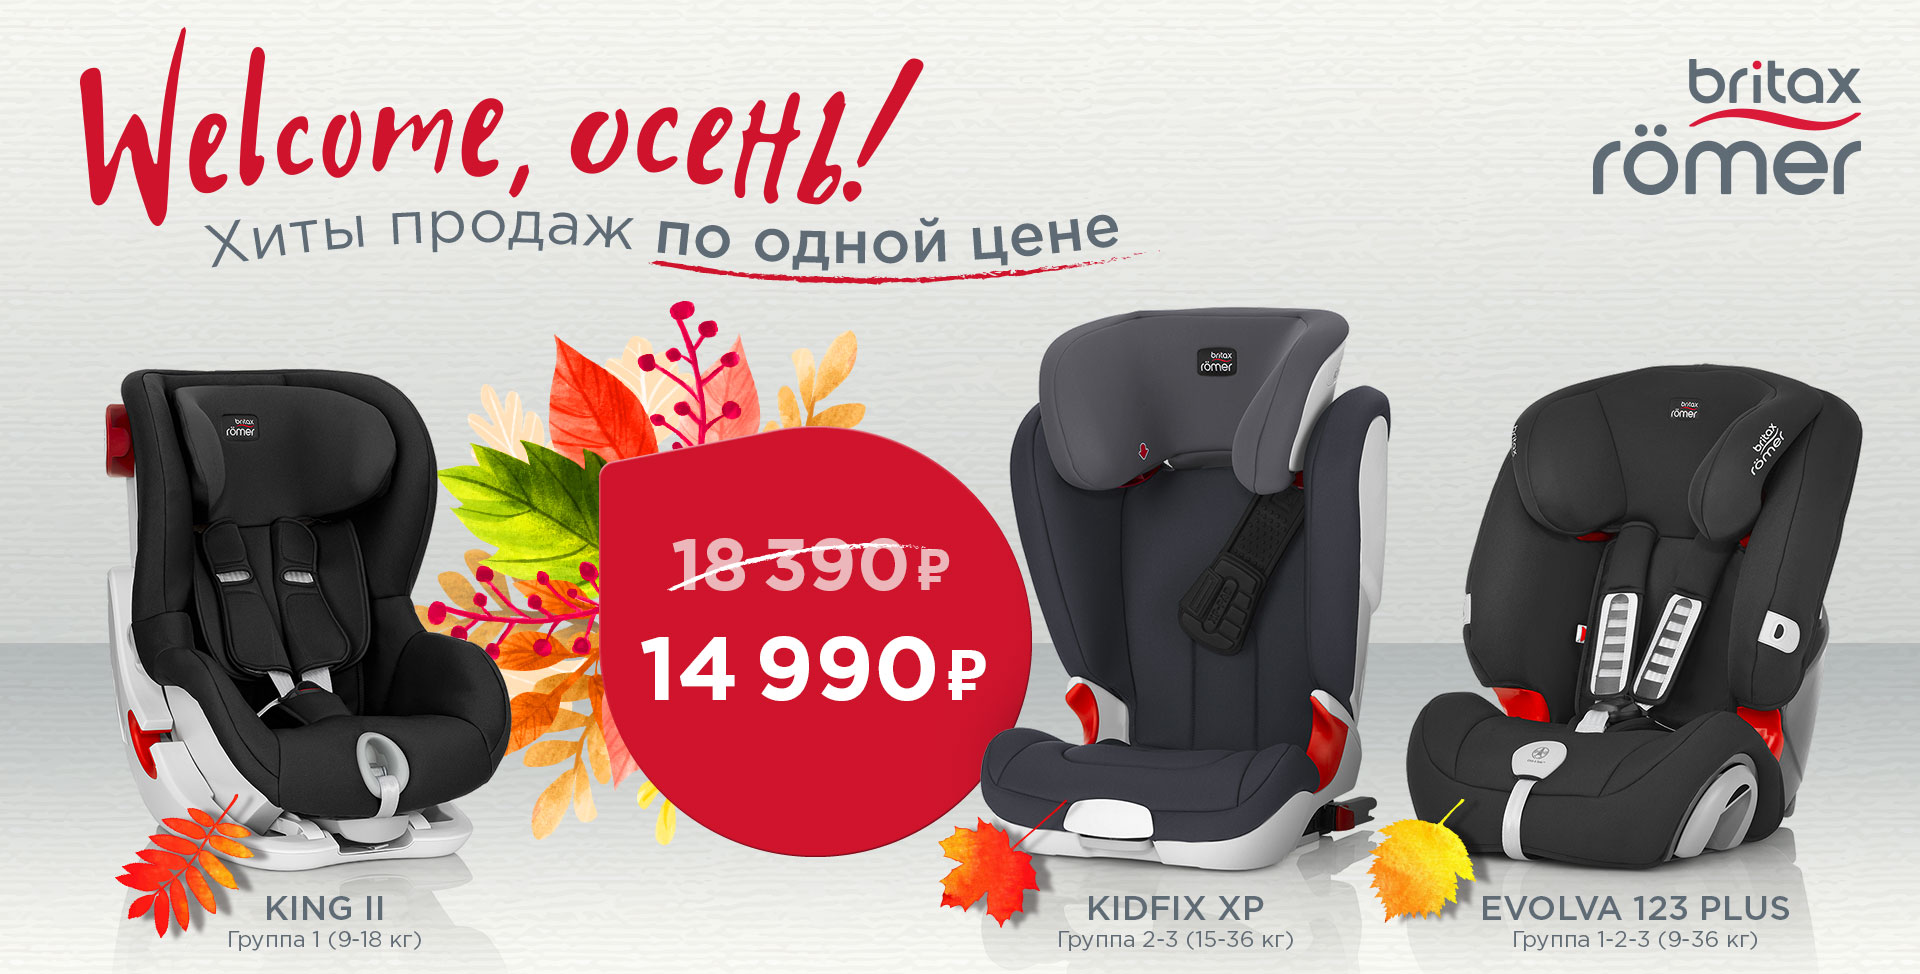 1920x974 Britax Roemer Welcome Осень.jpg (1920×974)